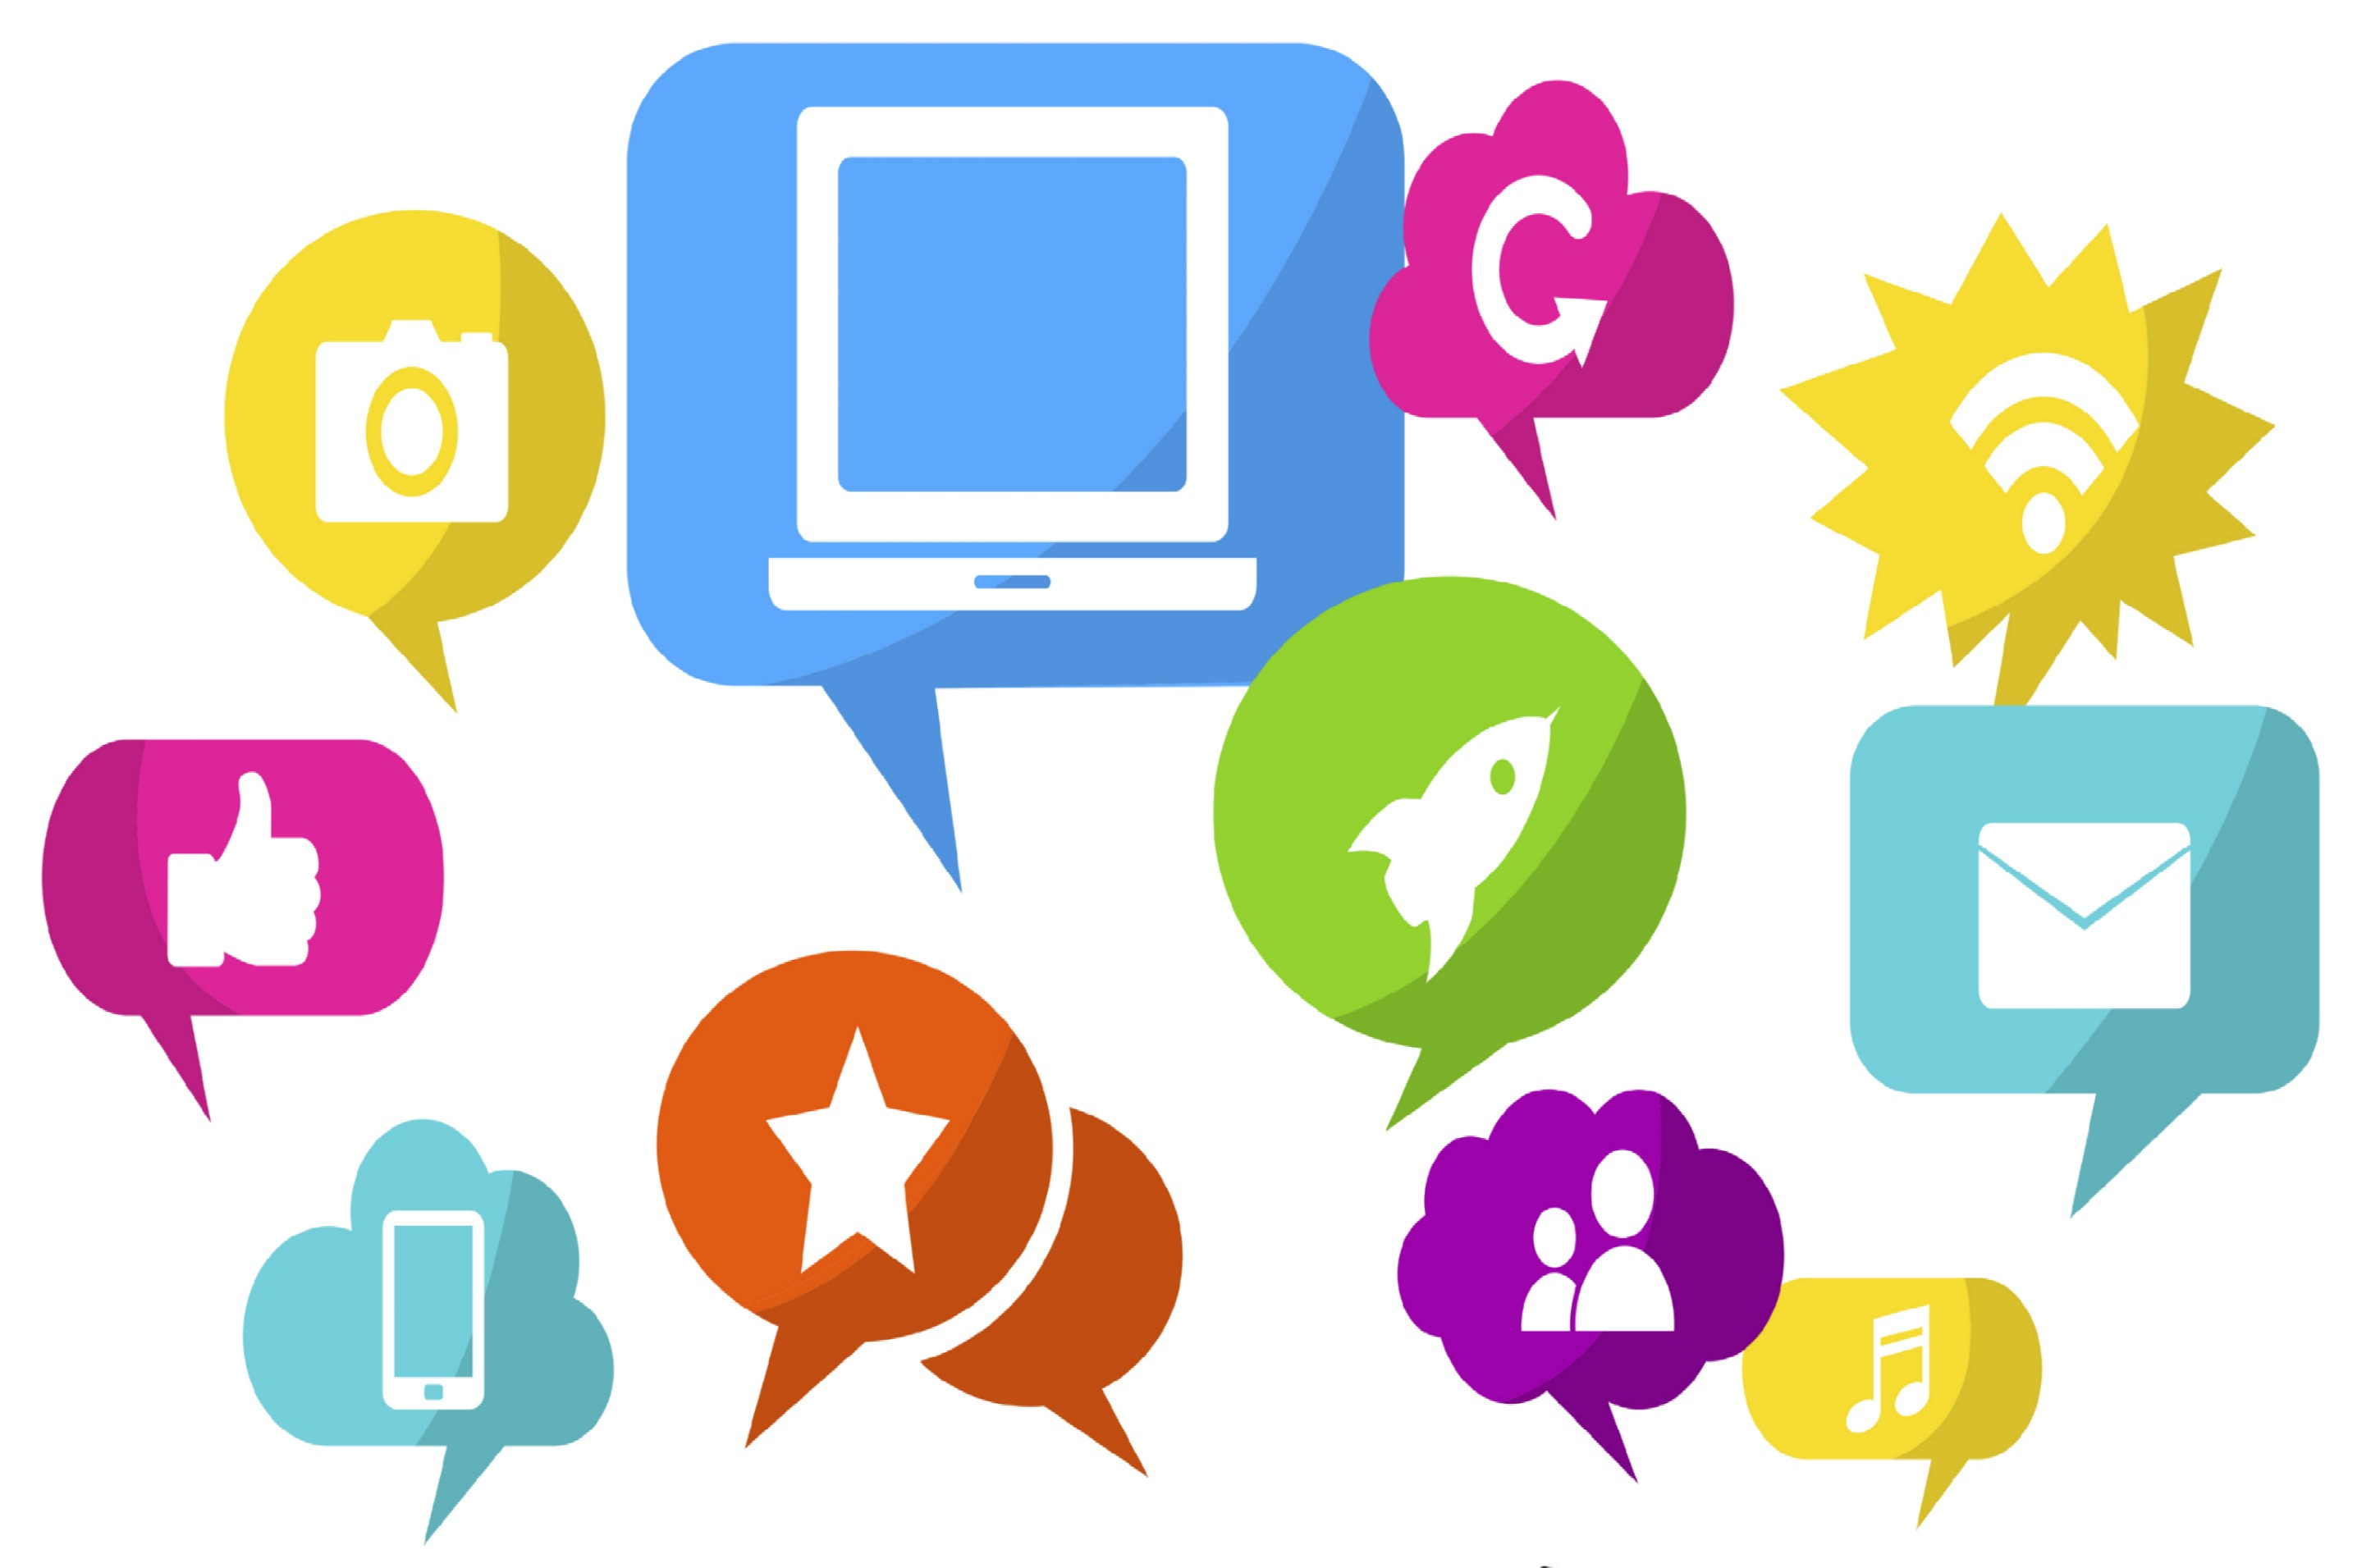 12 Customer Service Tools That Will Make Your Customers